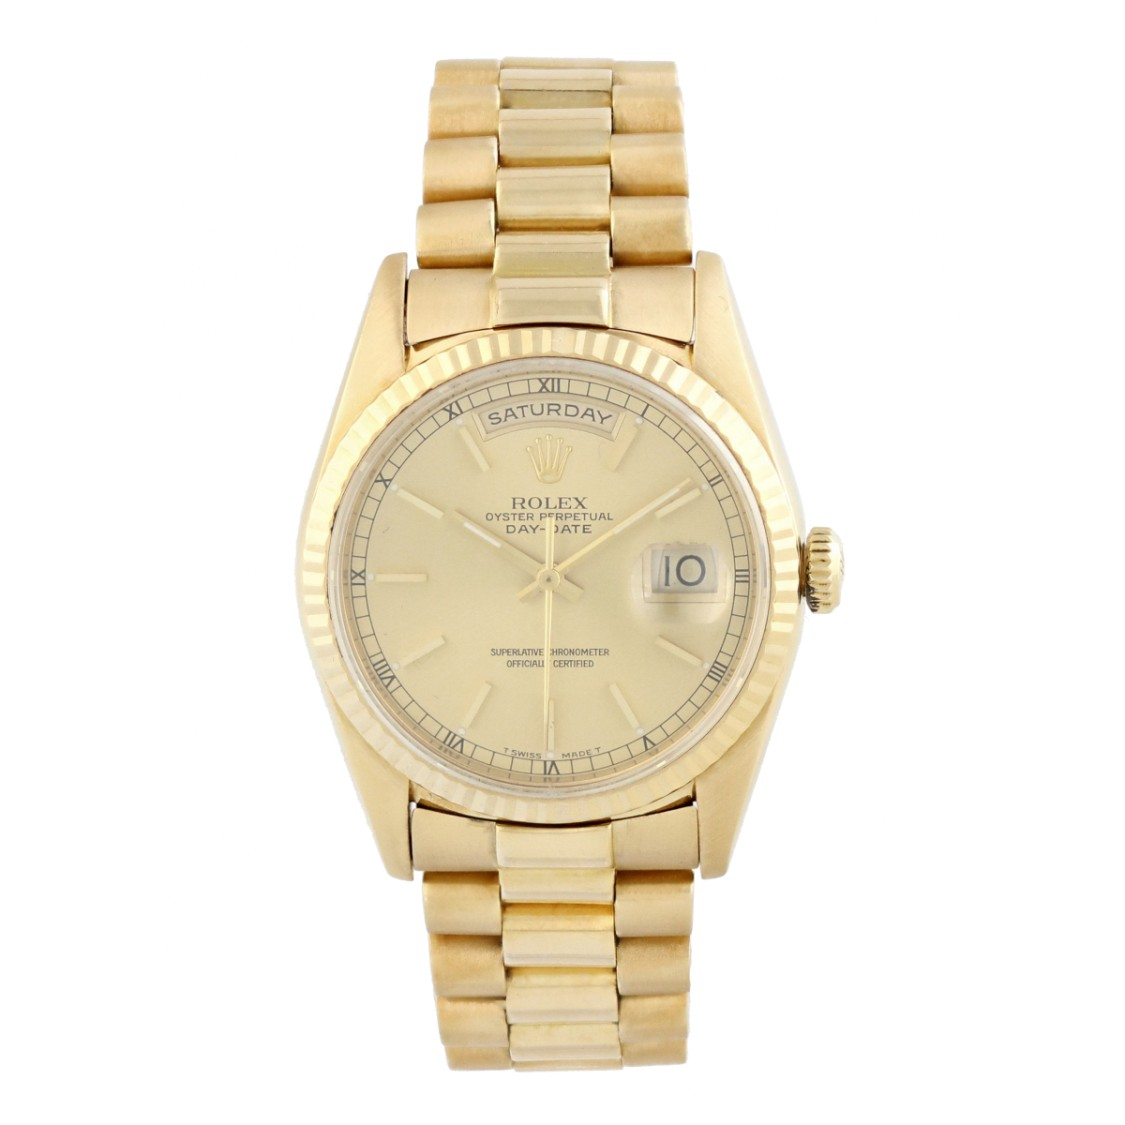 Rolex Lingerie DAY-DATE PRESIDENT 18238 18K YELLOW GOLD WATCH